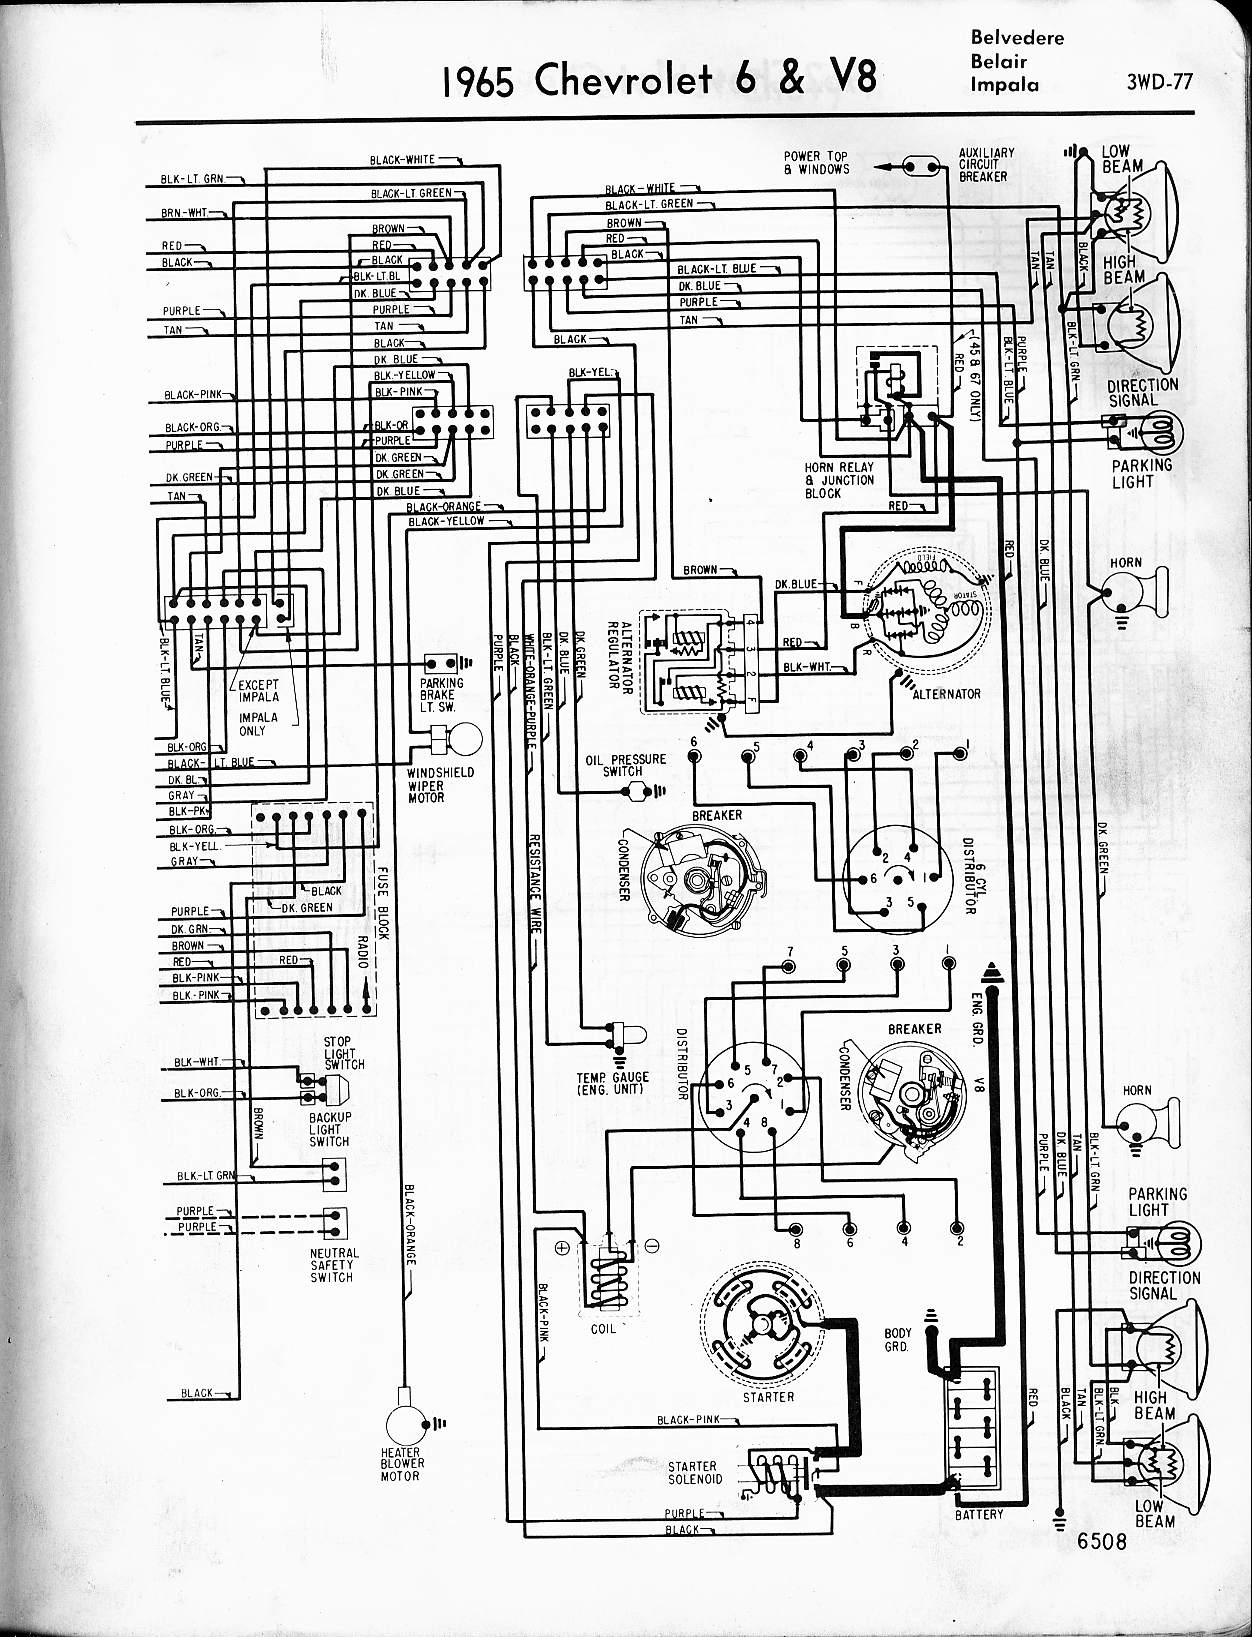 MWireChev65_3WD 077 chevy diagrams 1957 chevy headlight switch wiring diagram at soozxer.org